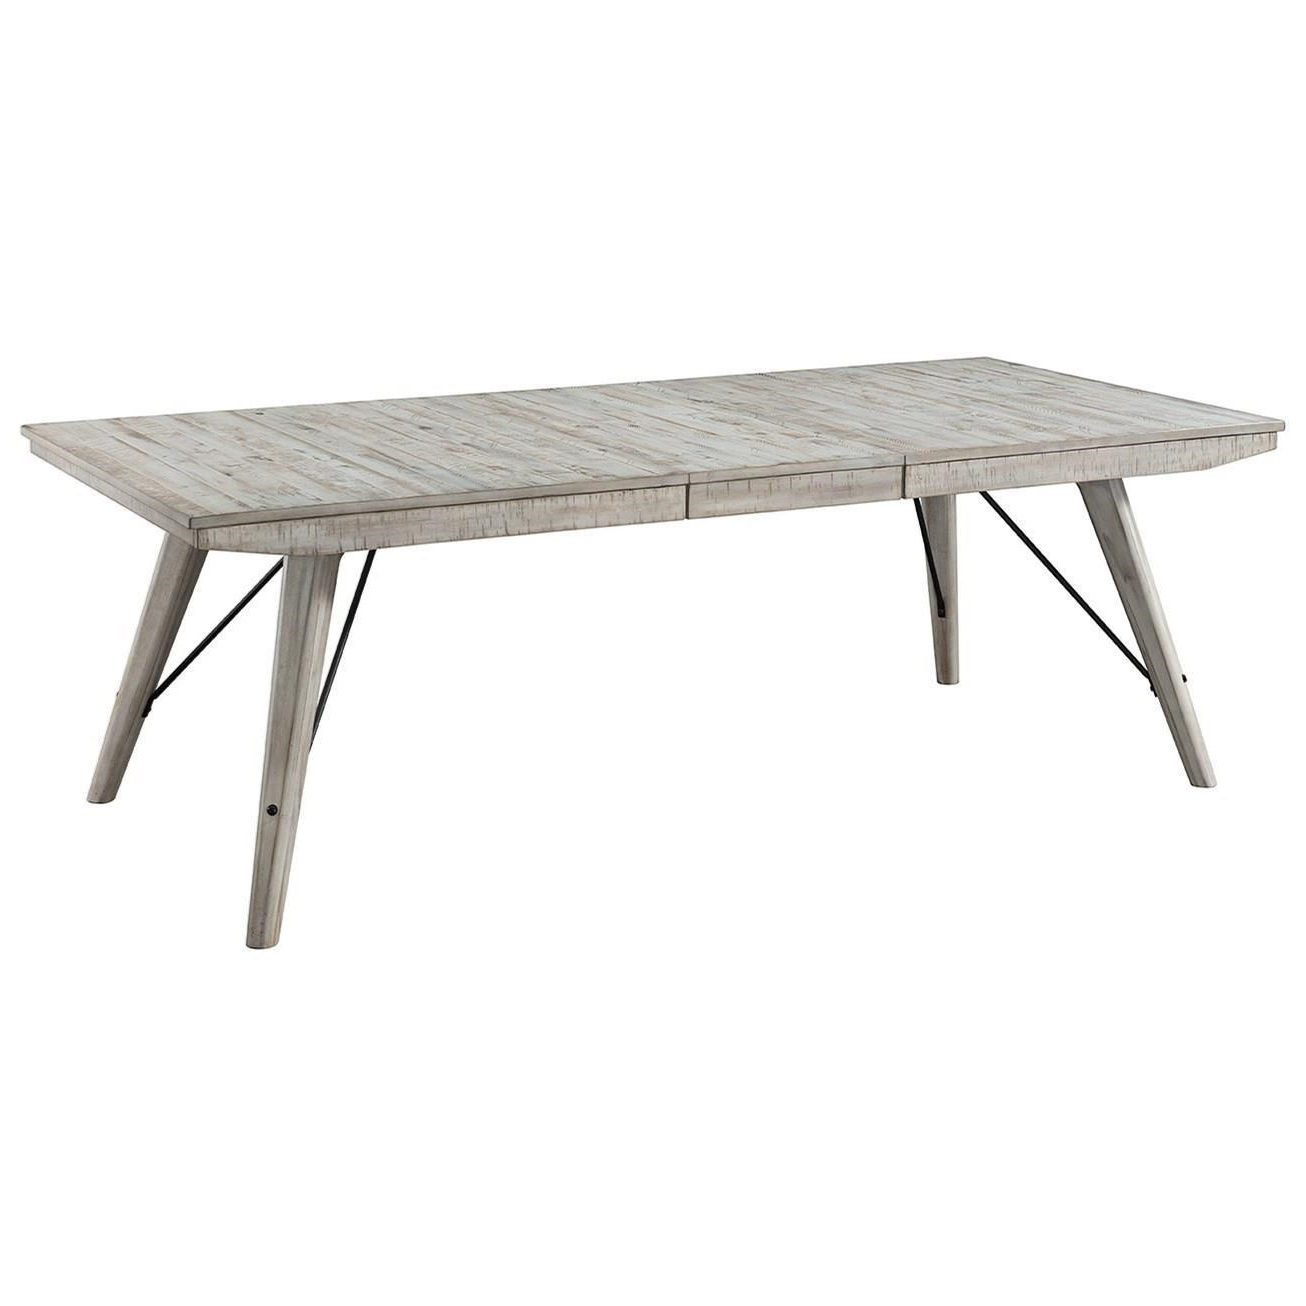 Widely Used Intercon Modern Rustic Contemporary Rectangular Dining Table Throughout Contemporary Rectangular Dining Tables (Gallery 21 of 30)